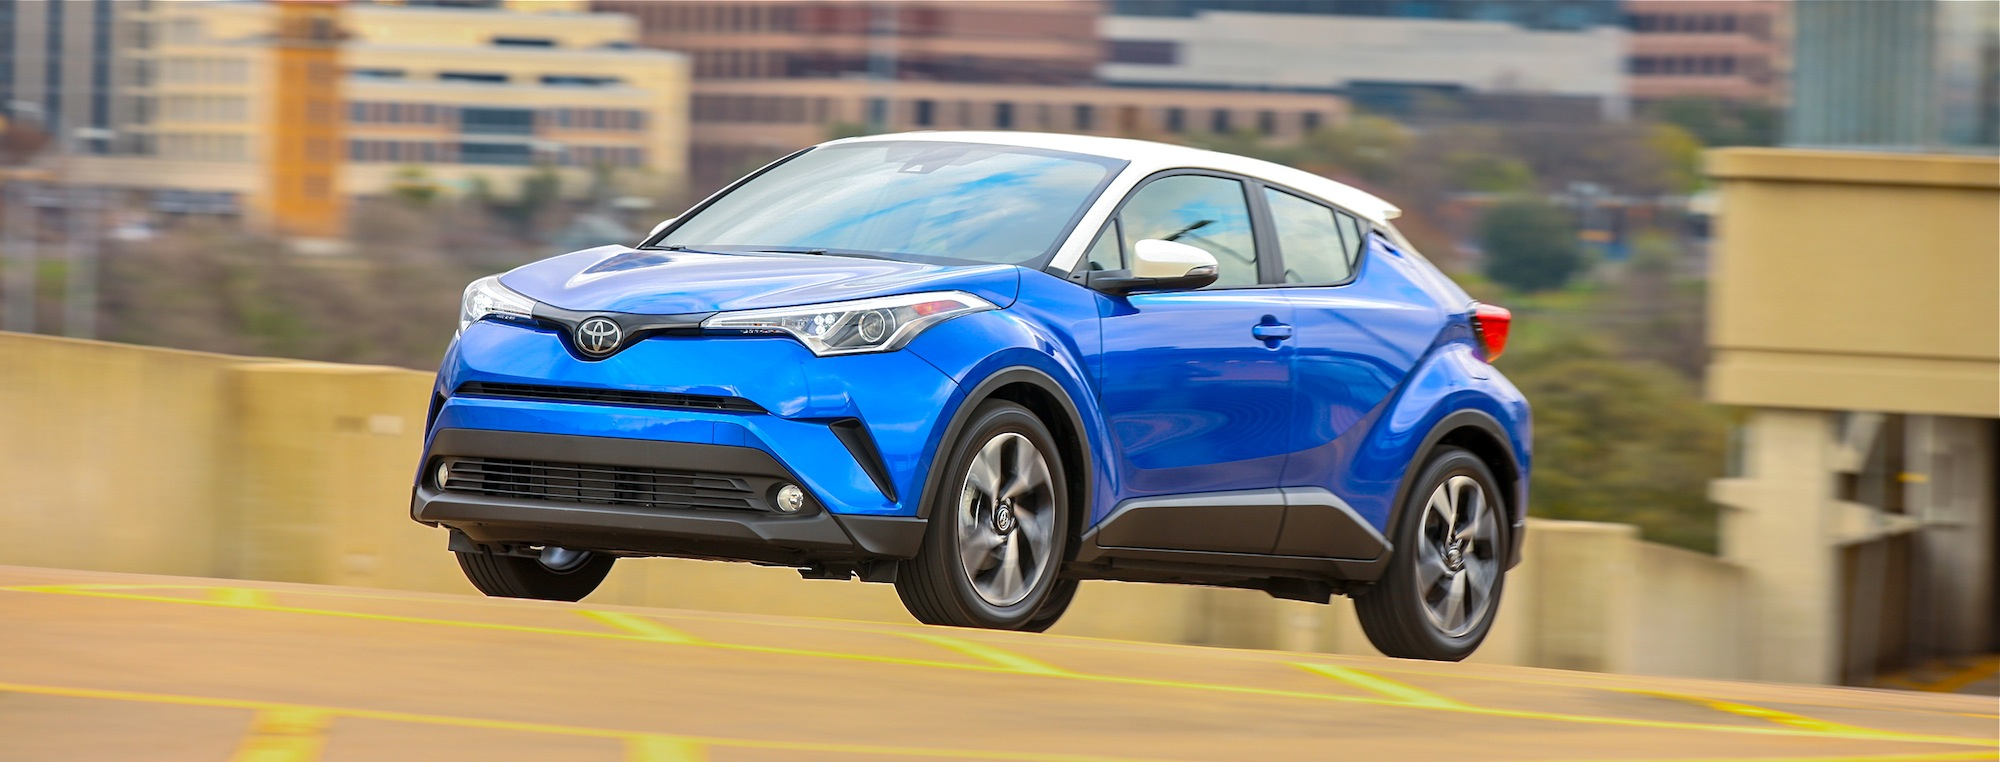 The Best SUV Lease Deals for February 2018